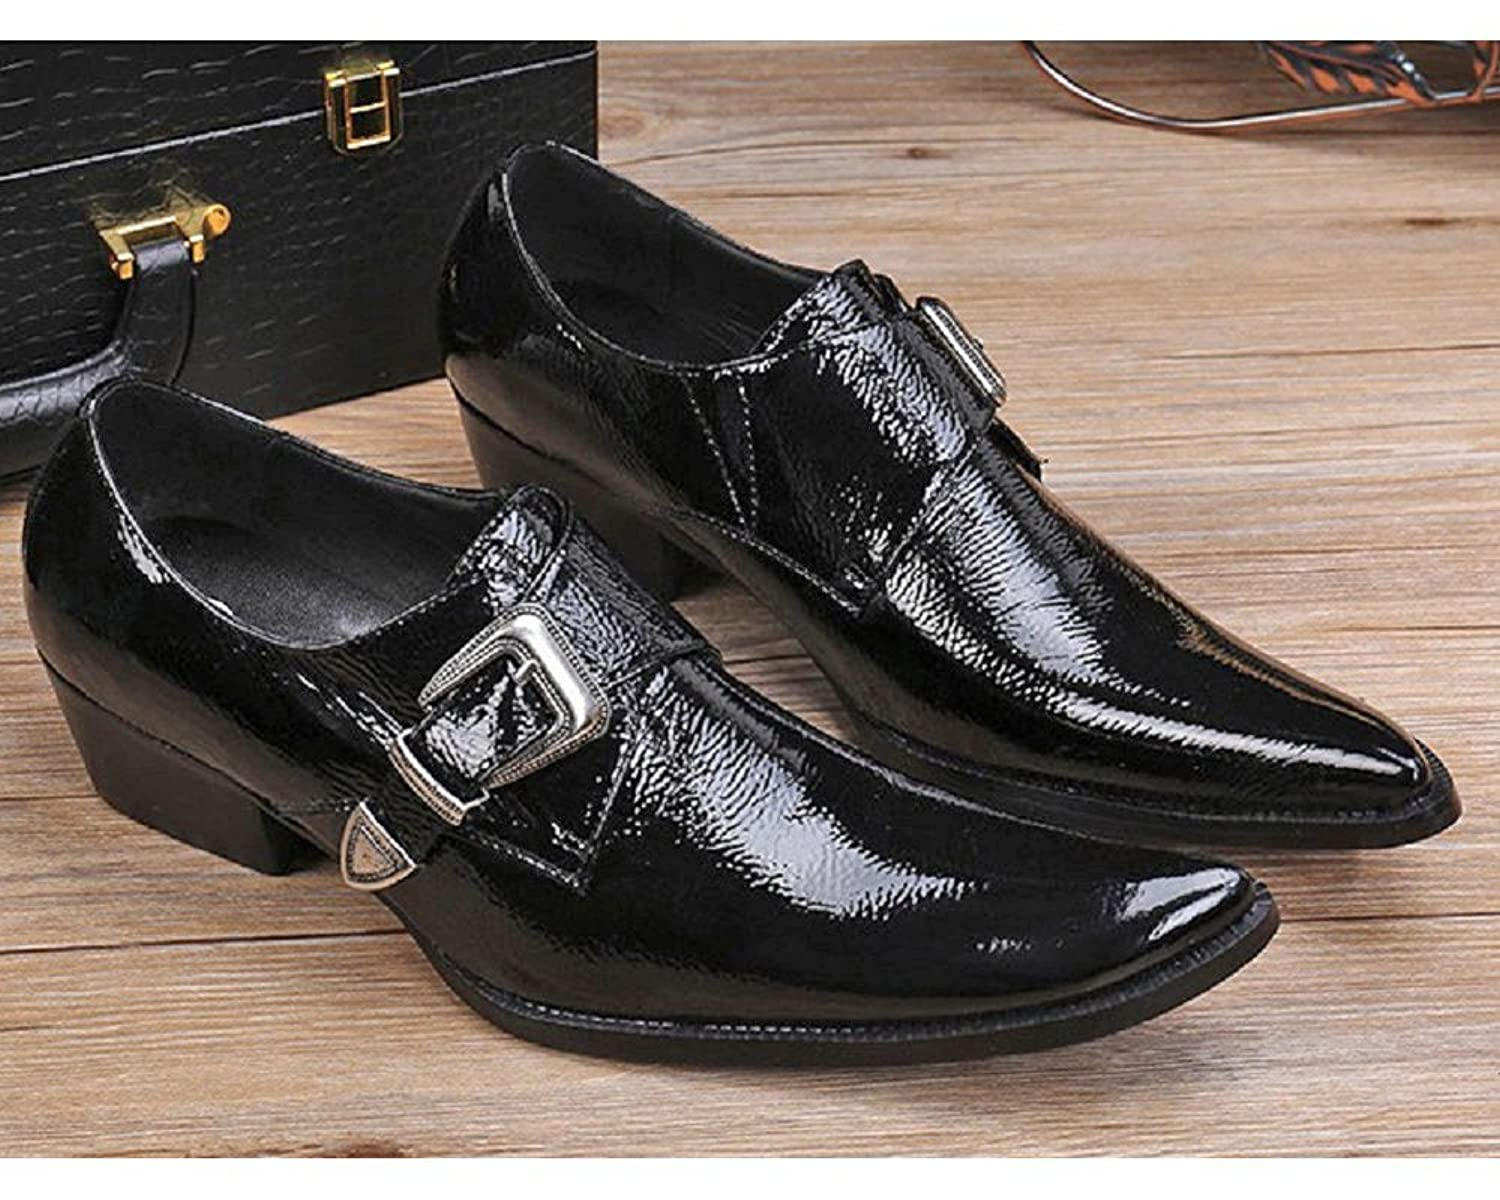 Size 5-12 New Black Genuine Leather Mens Slip On Buckle Formal Business Dress Suit Loafers Shoes